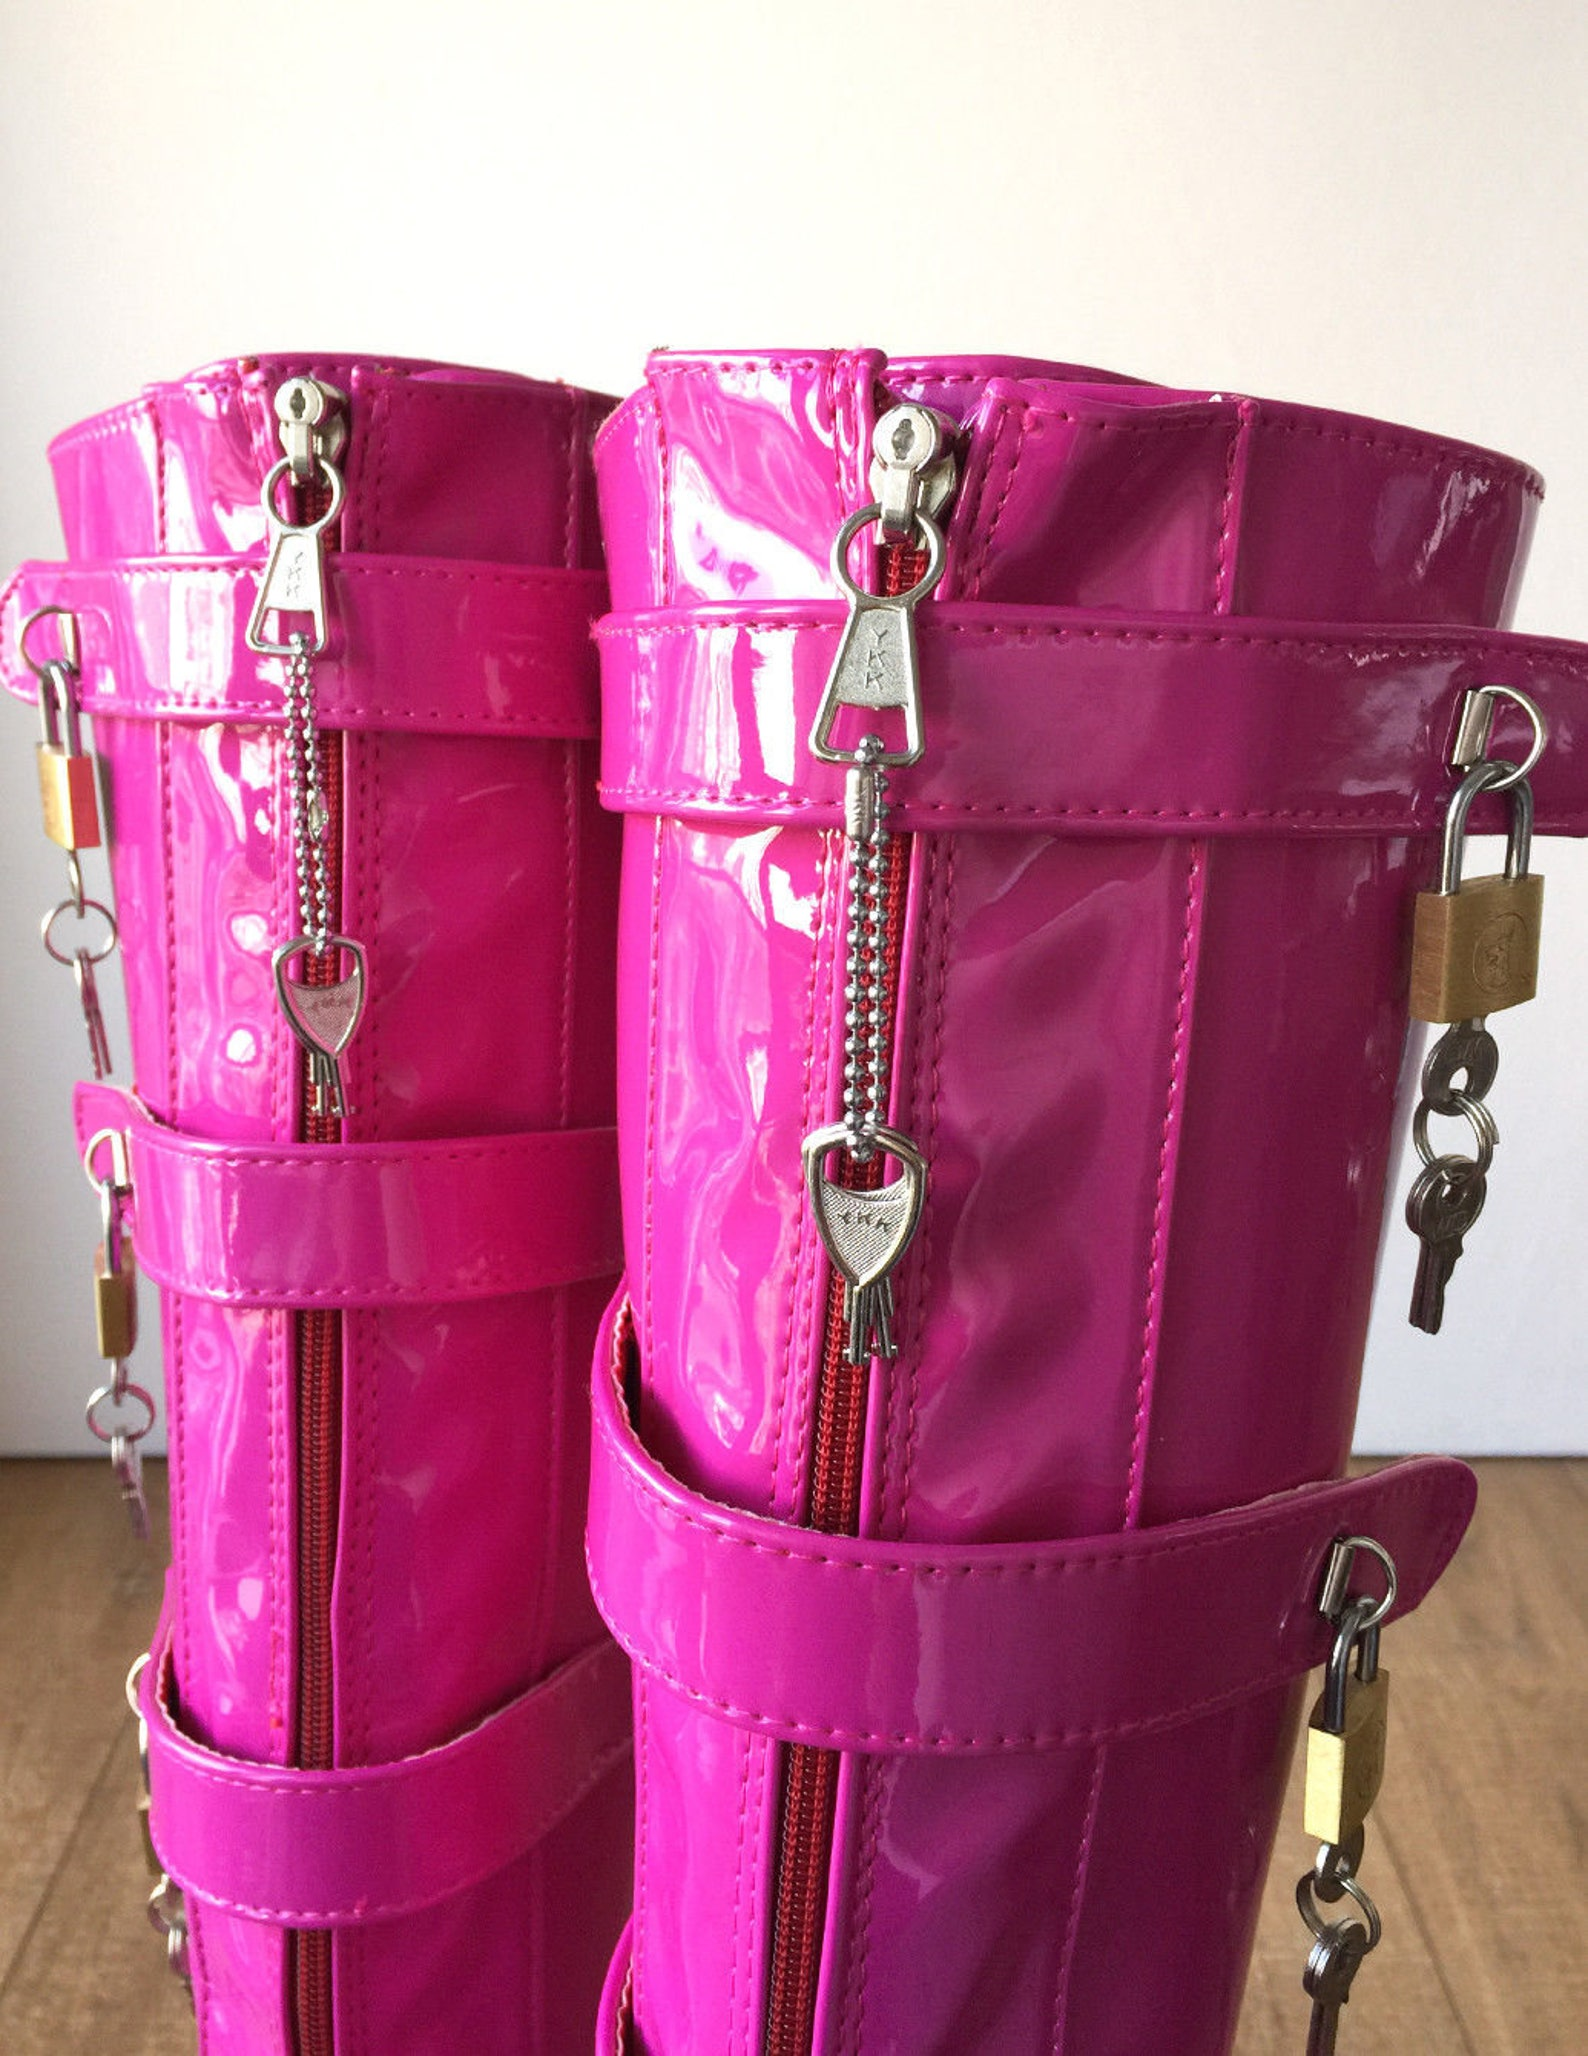 18cm 10 keys lockable beginner ballet wedge boots hoof heelless fetish hot pink